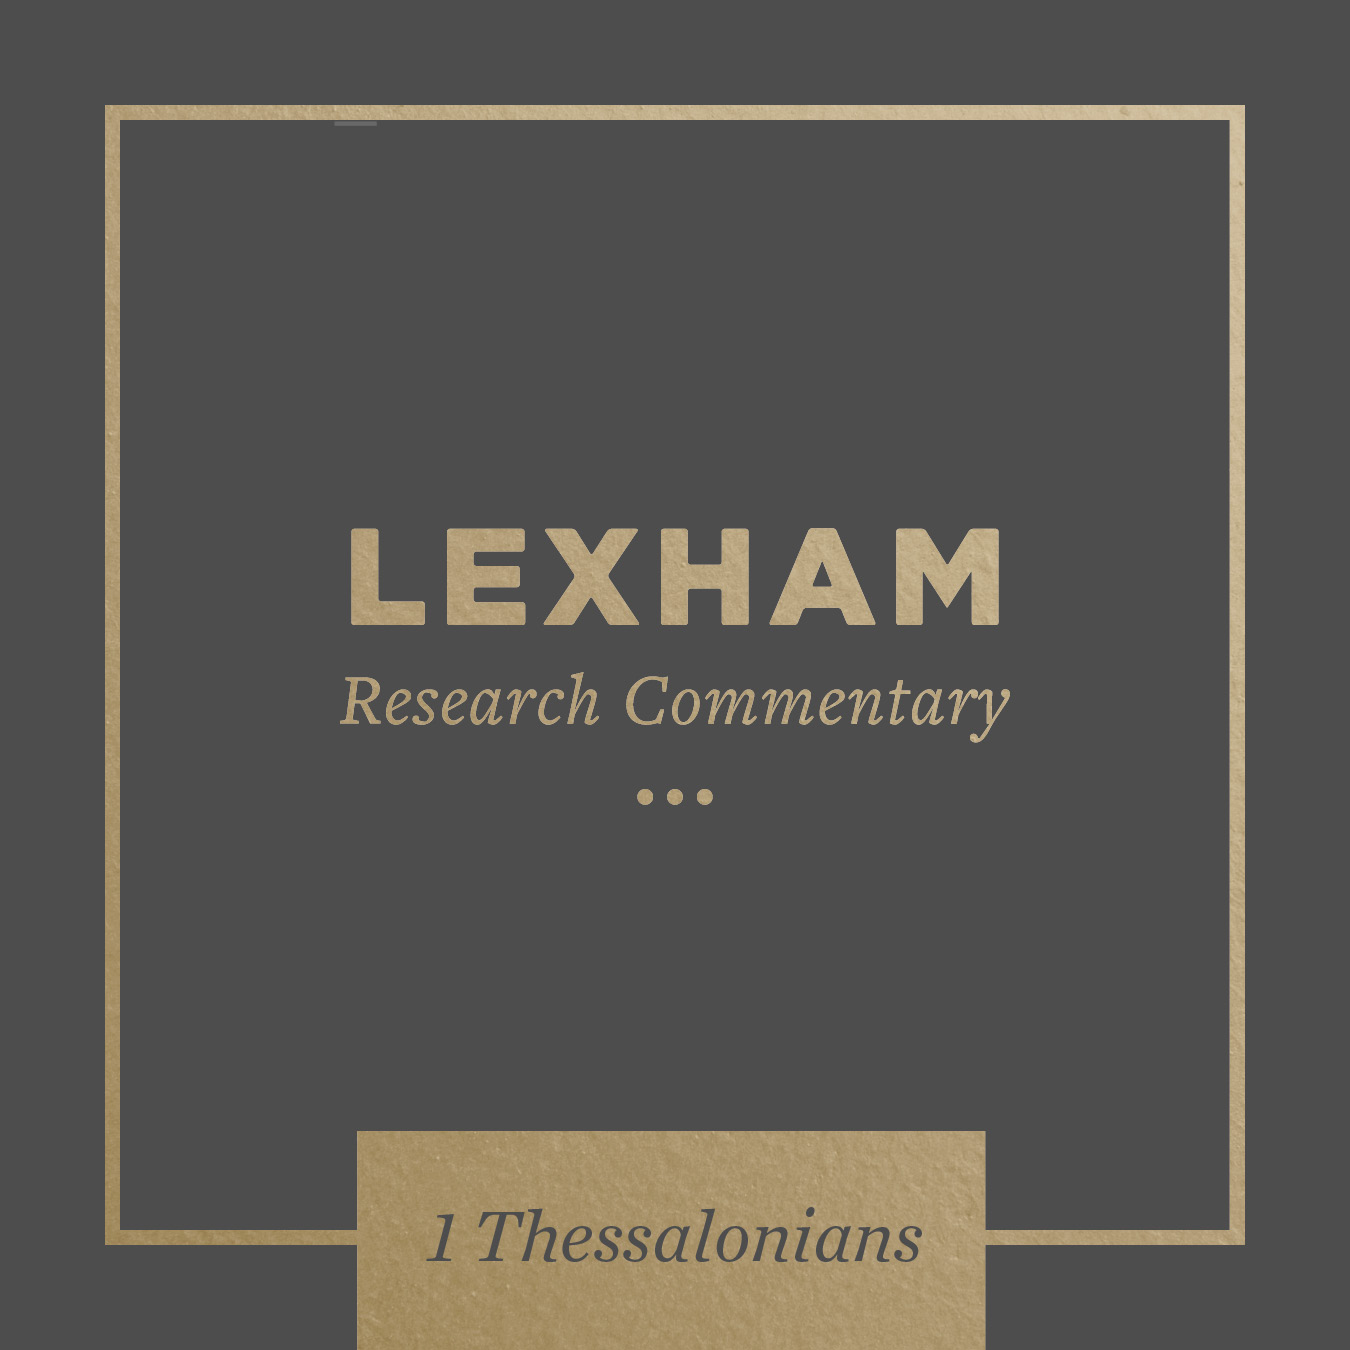 Lexham Research Commentary: 1 Thessalonians